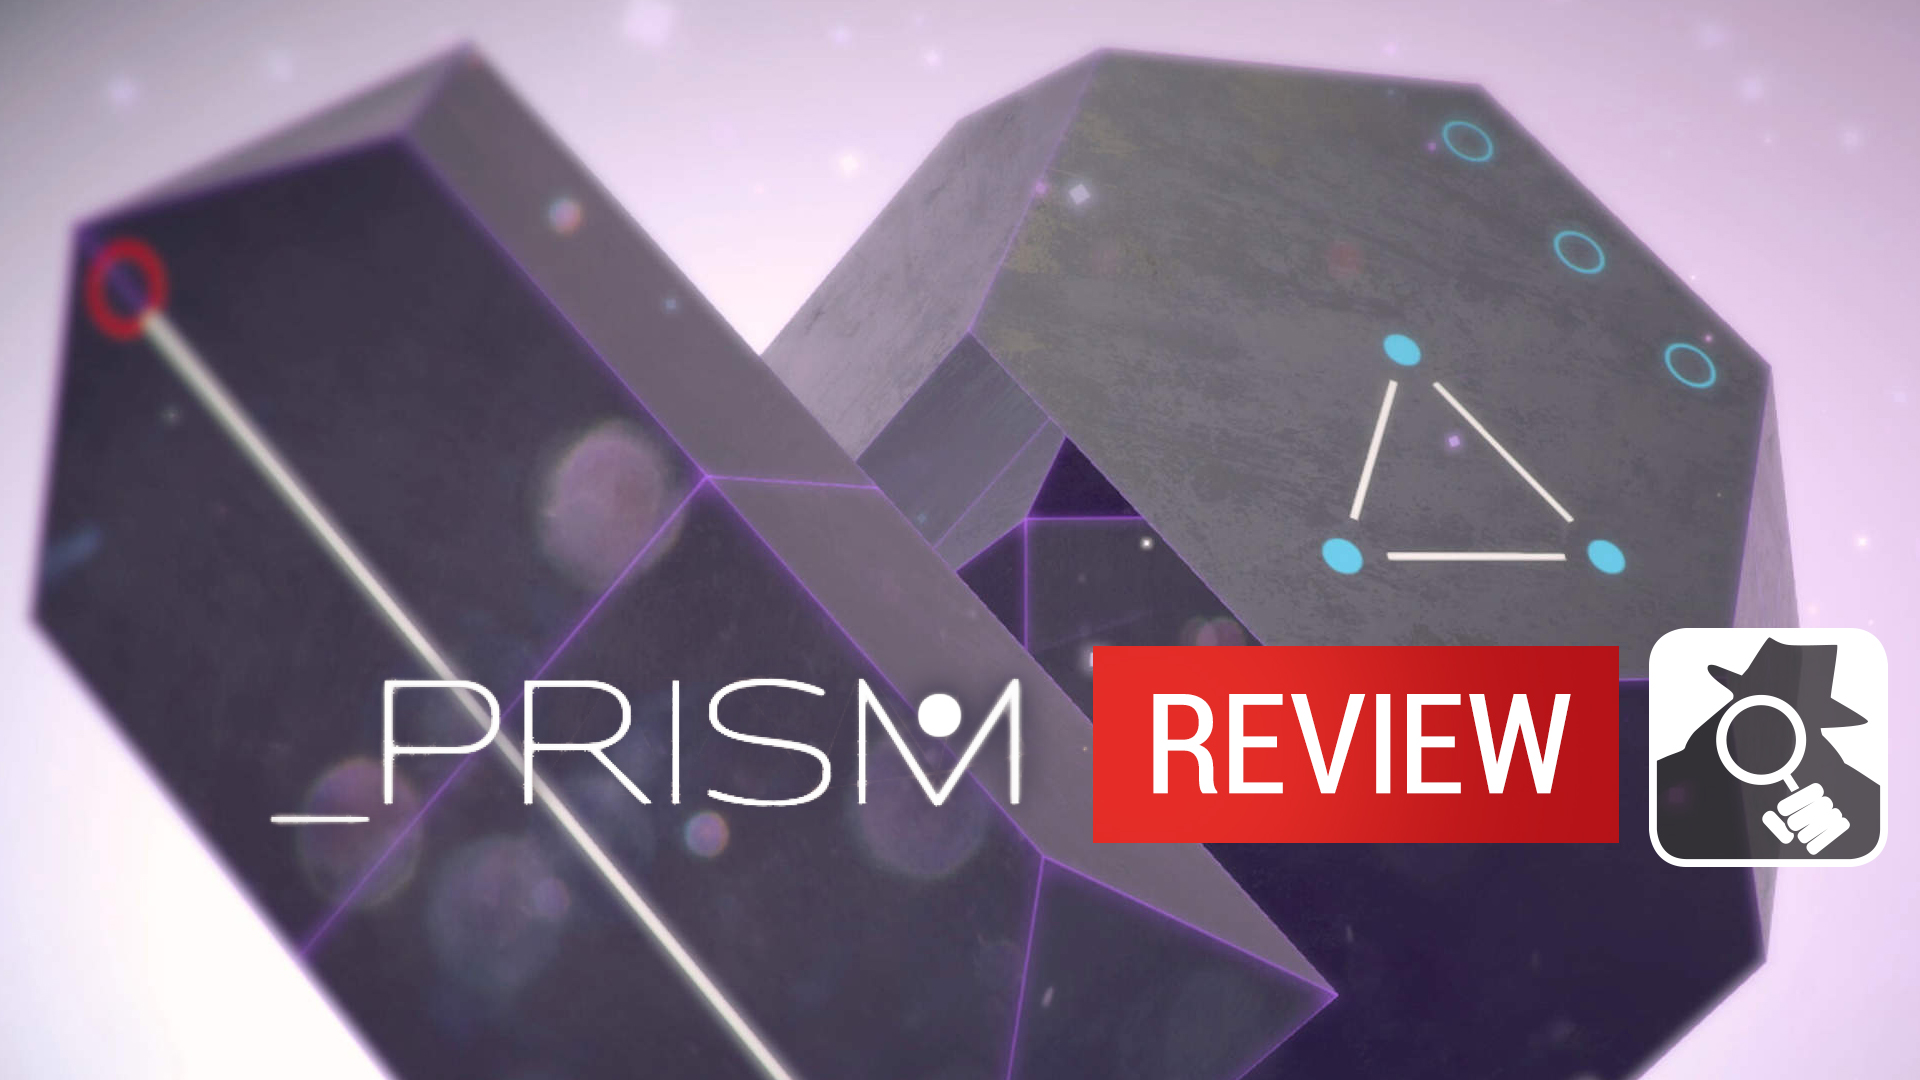 _PRISM: Video Review